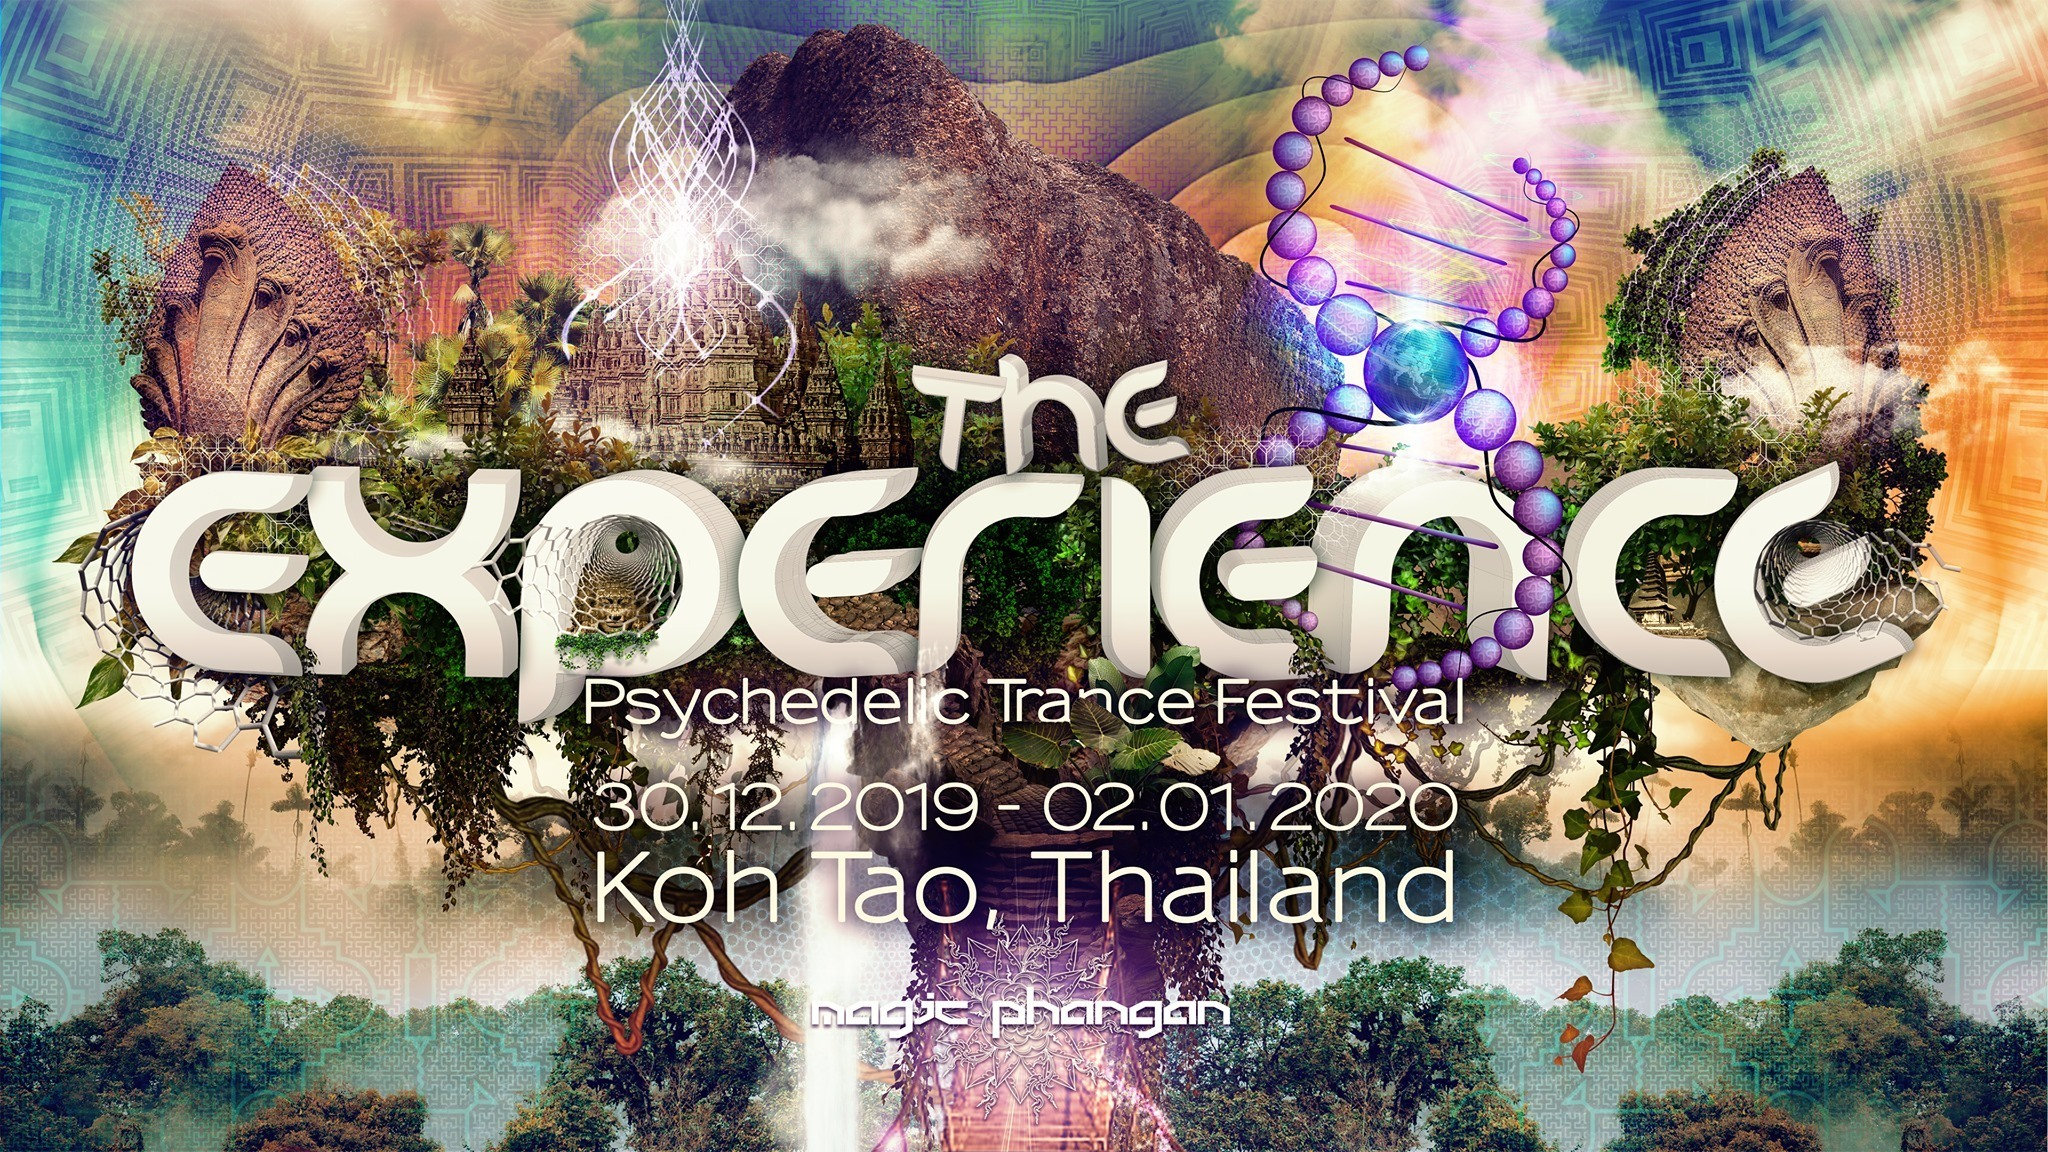 The Experience Koh Tao - Psy Trance Music Festival Thailand 2019